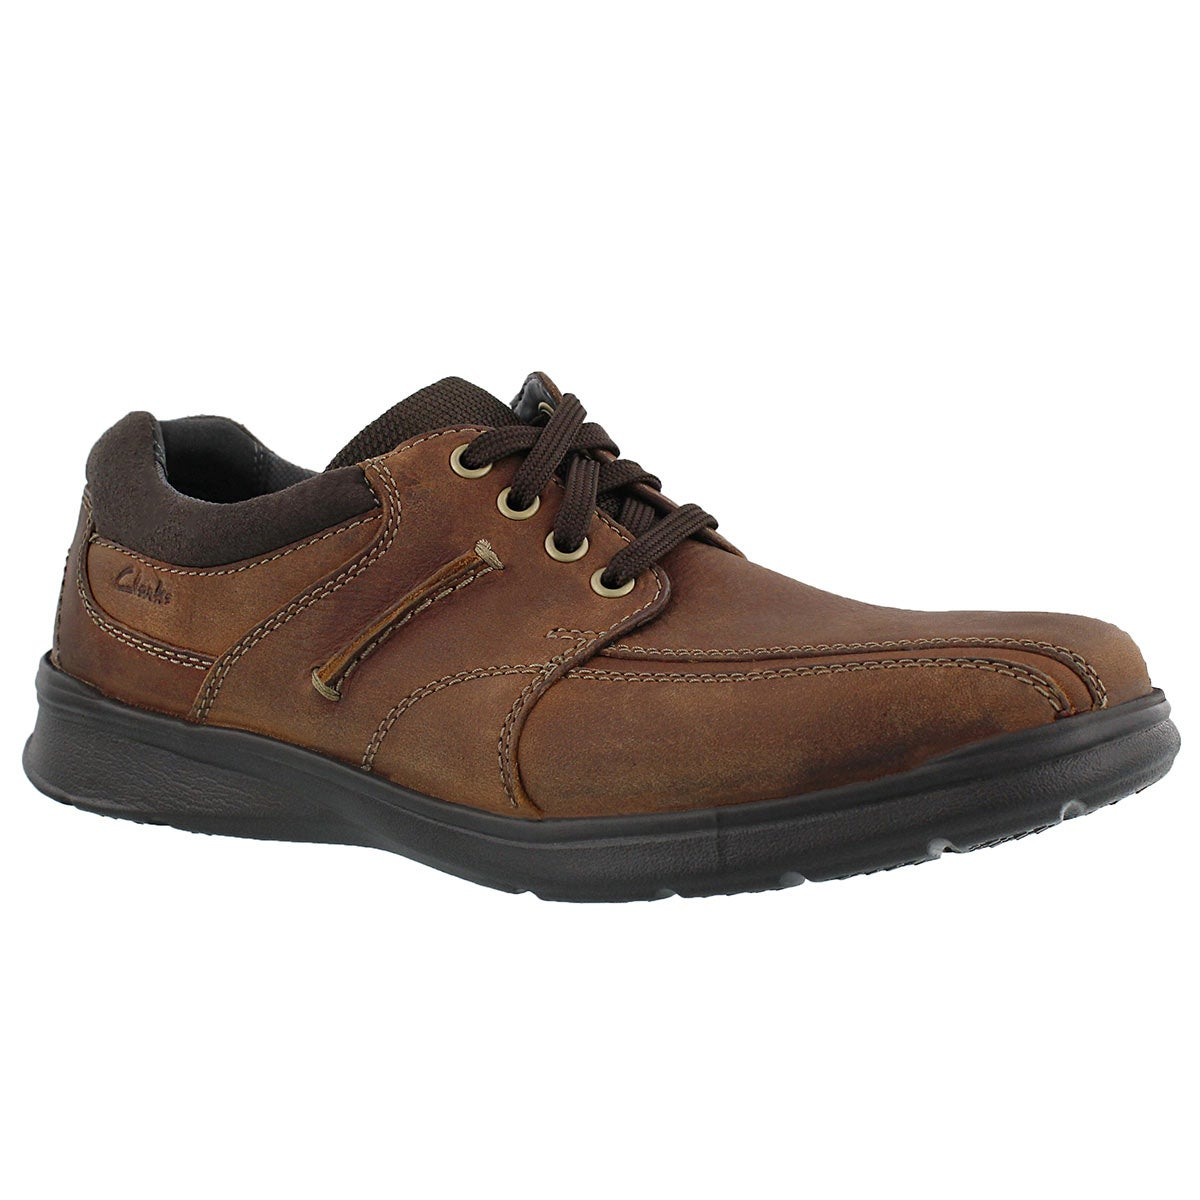 Mns Cotrell Walk tobacco oxford - WIDE